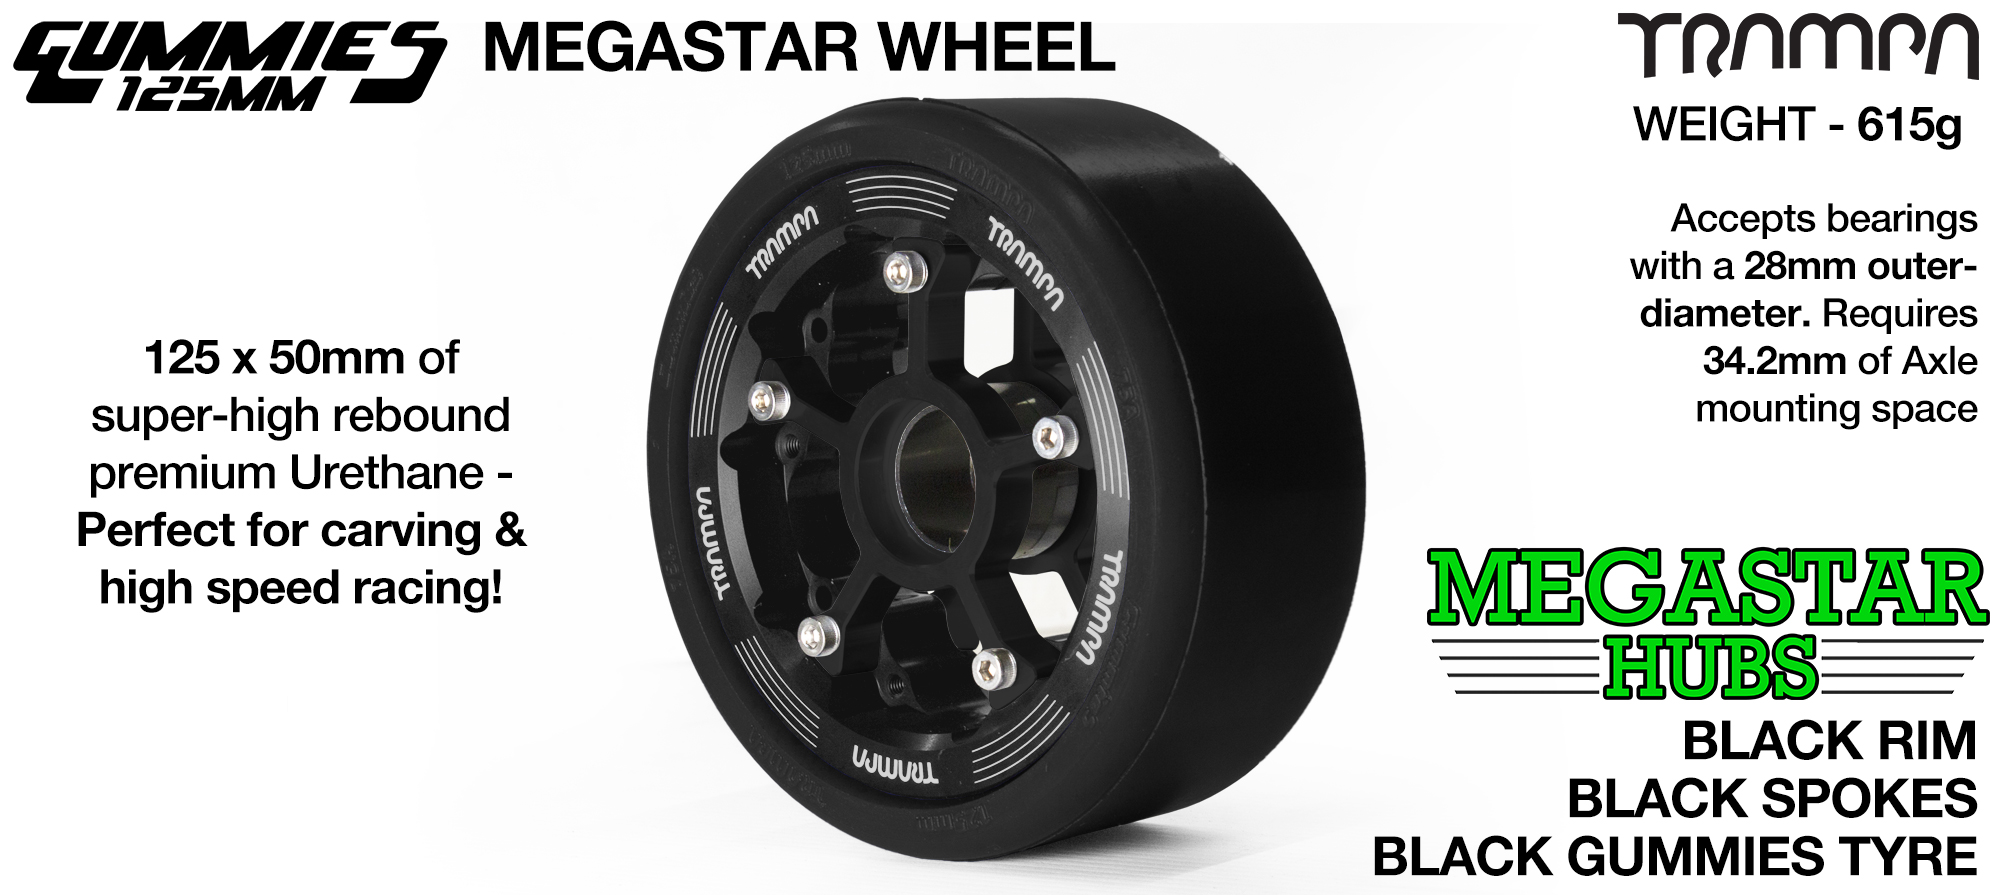 BLACK MEGASTAR Rim with BLACK Spokes with BLACK Gummies - The Ultimate Longboard Wheel